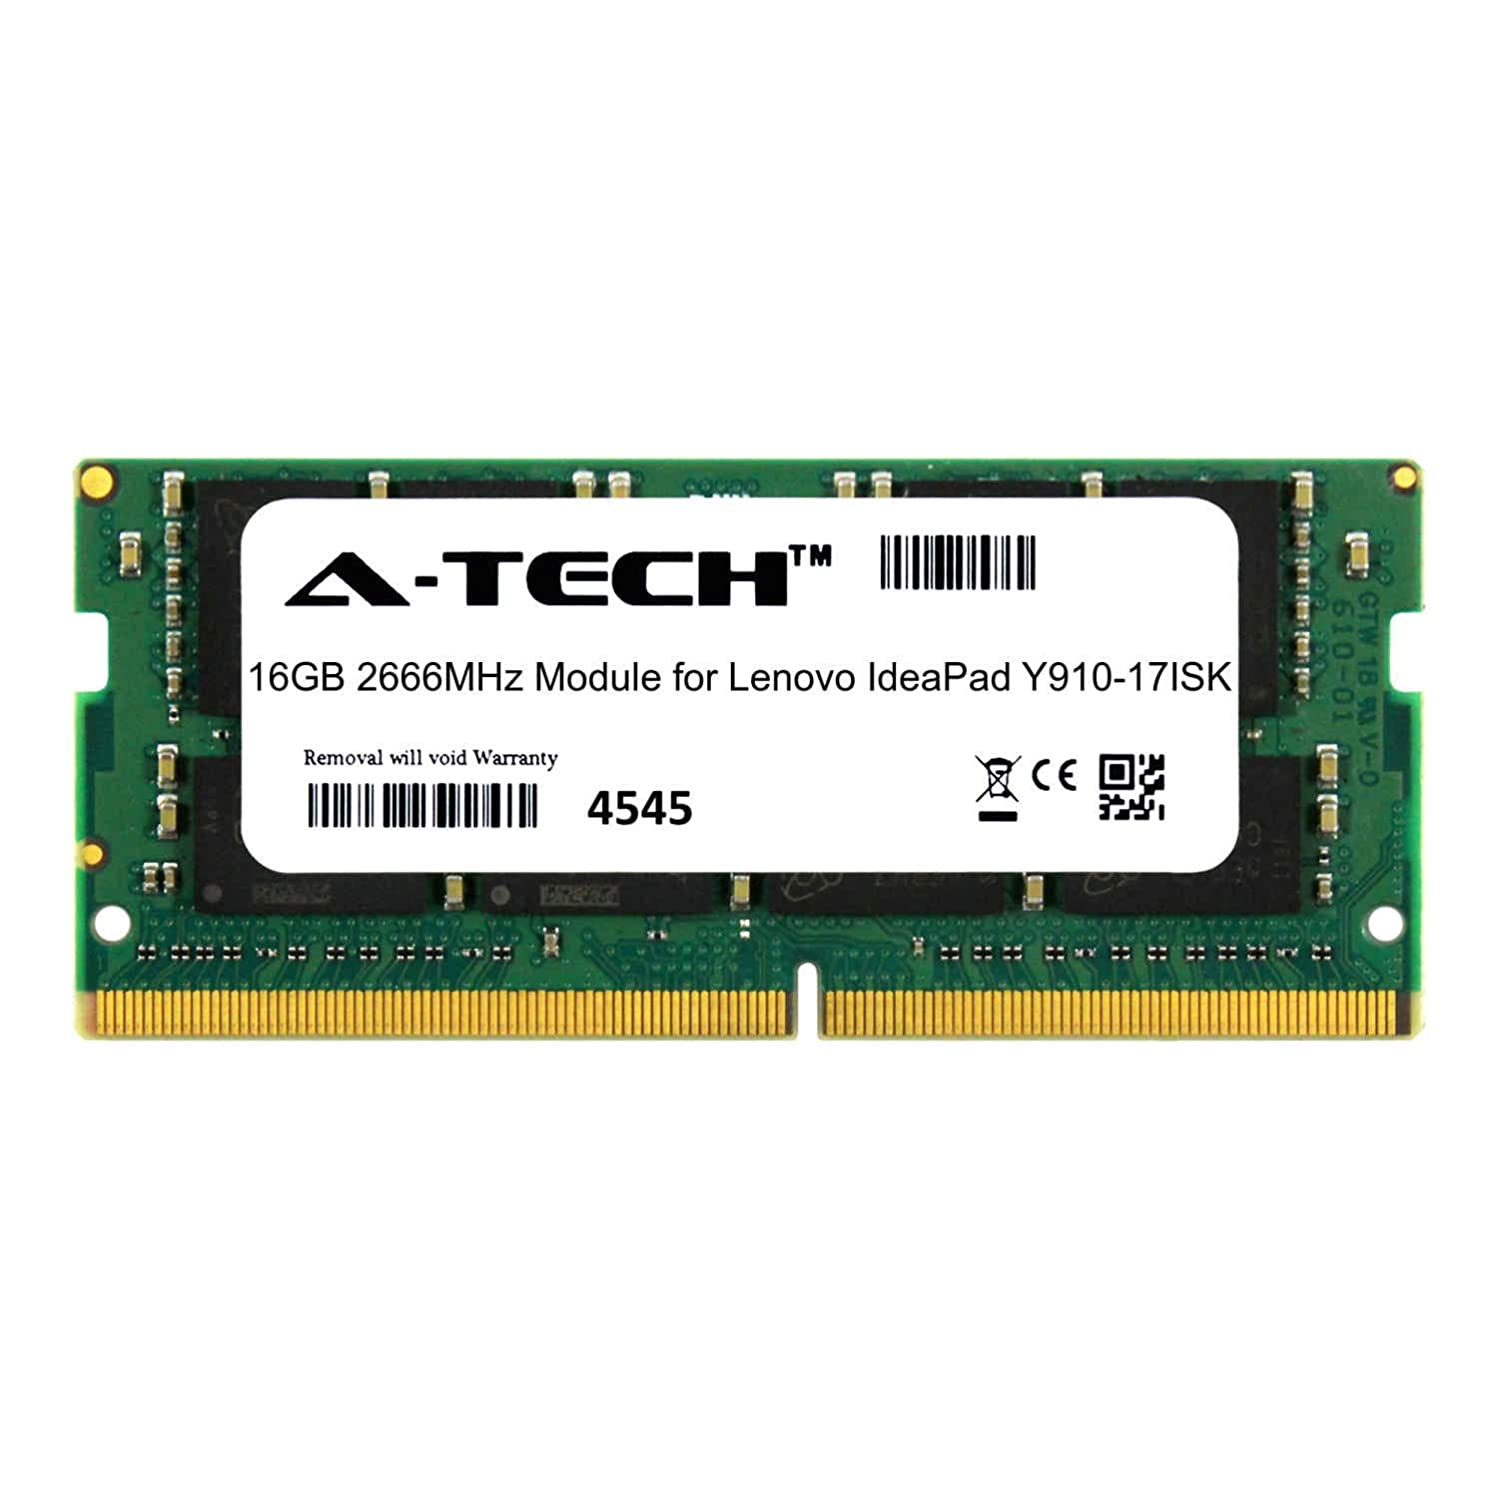 A-Tech 16GB Module for Lenovo IdeaPad Y910-17ISK Laptop & Notebook Compatible DDR4 2666Mhz Memory Ram (ATMS277129A25832X1)